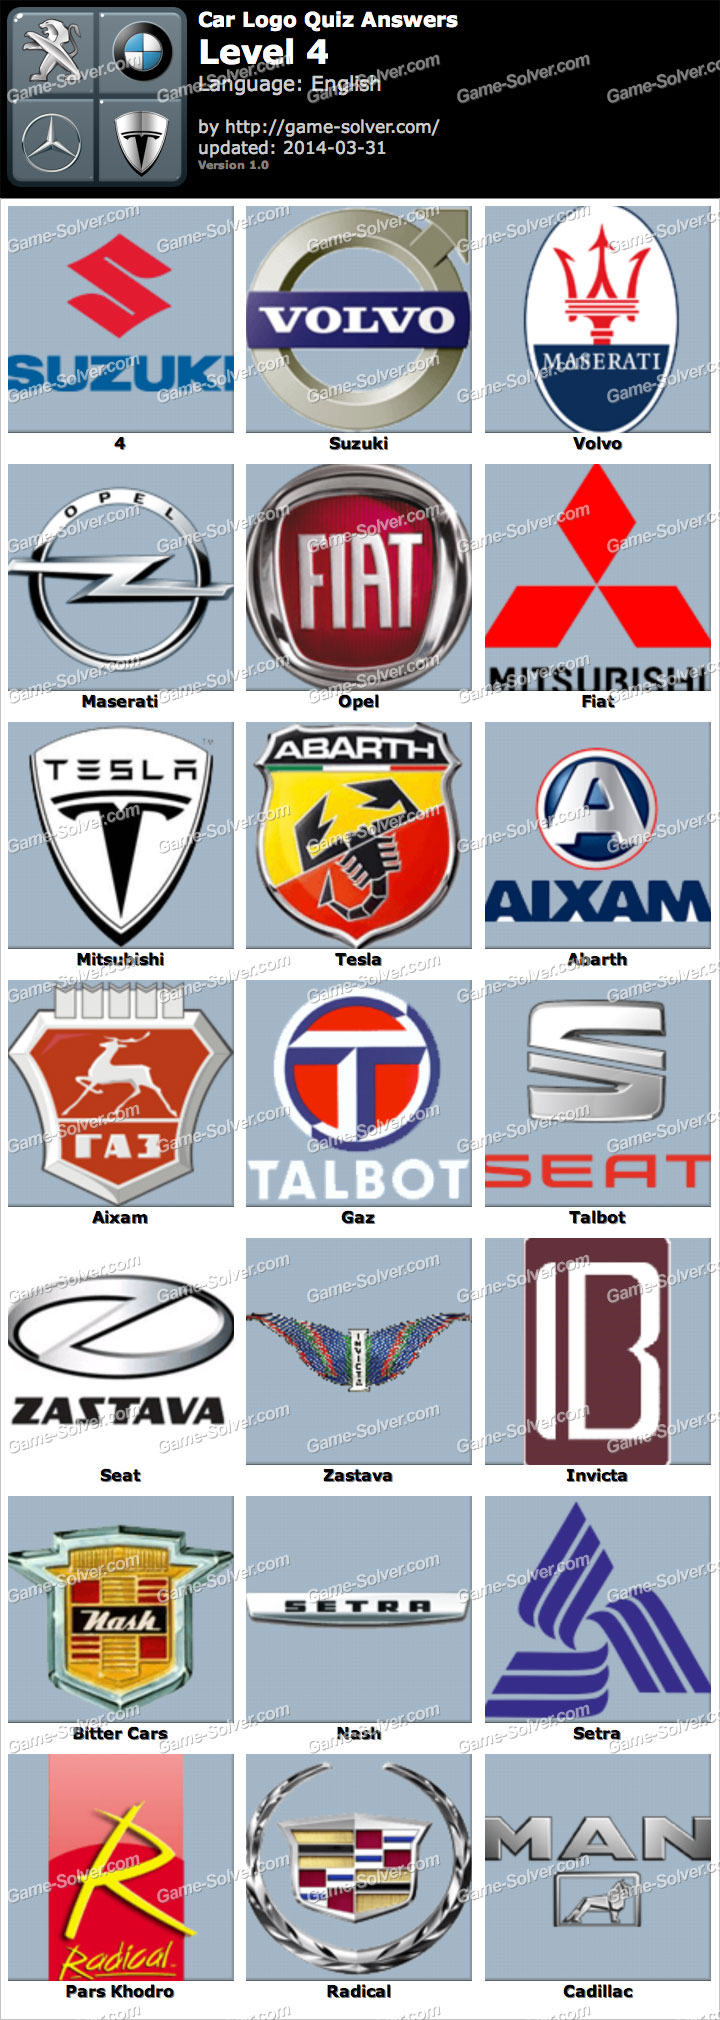 car logo quiz level 4 game solver